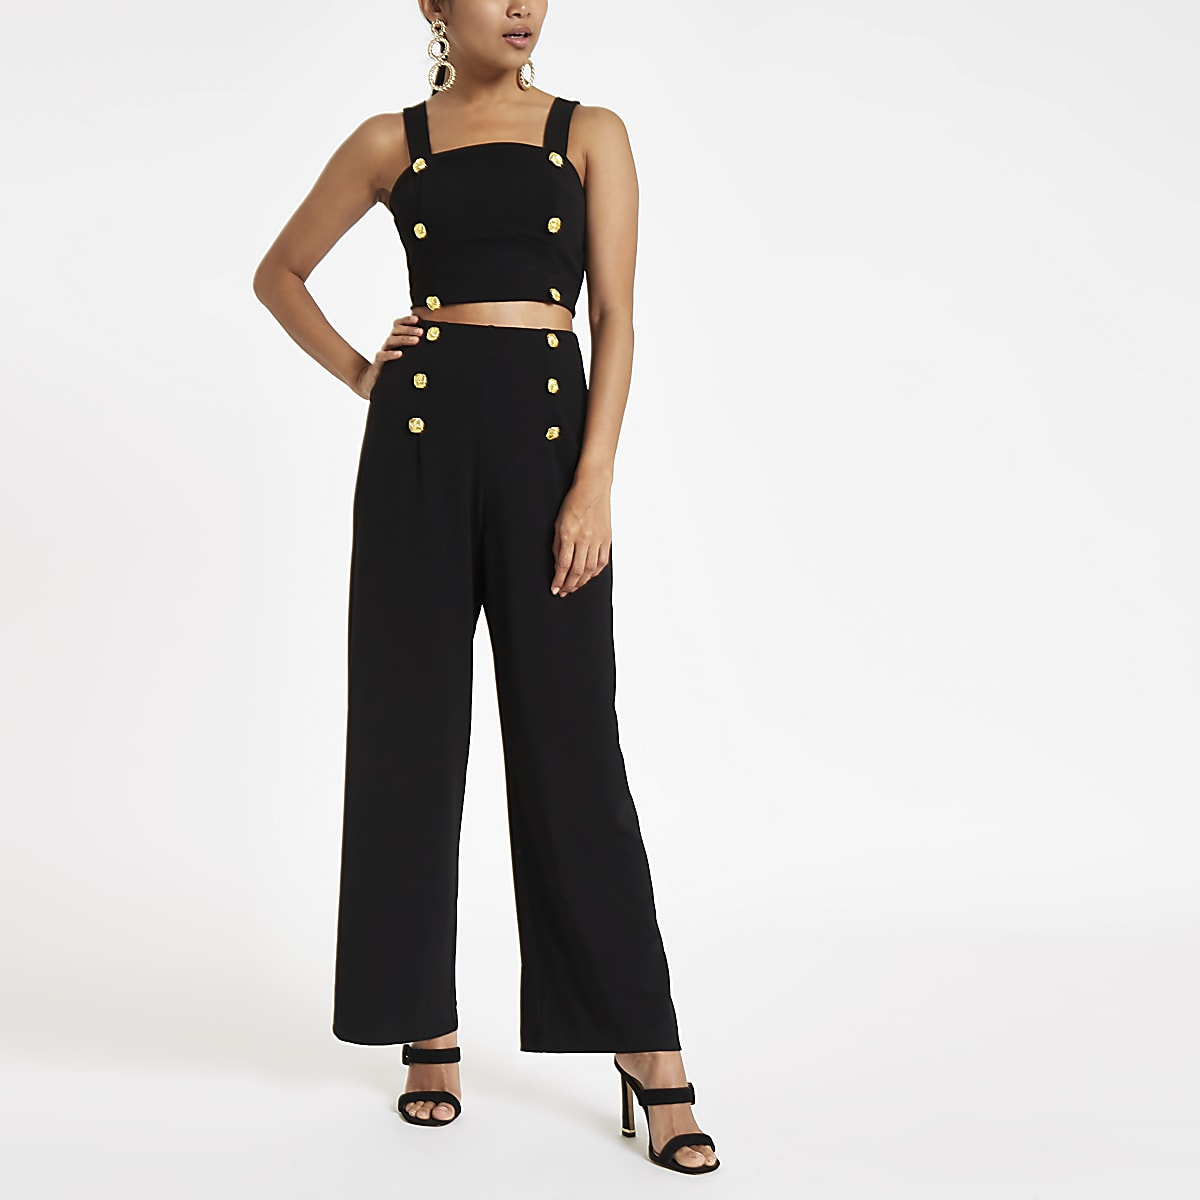 8aa41092f2b5e7 High Waisted Wide Leg Dress Pants Petite